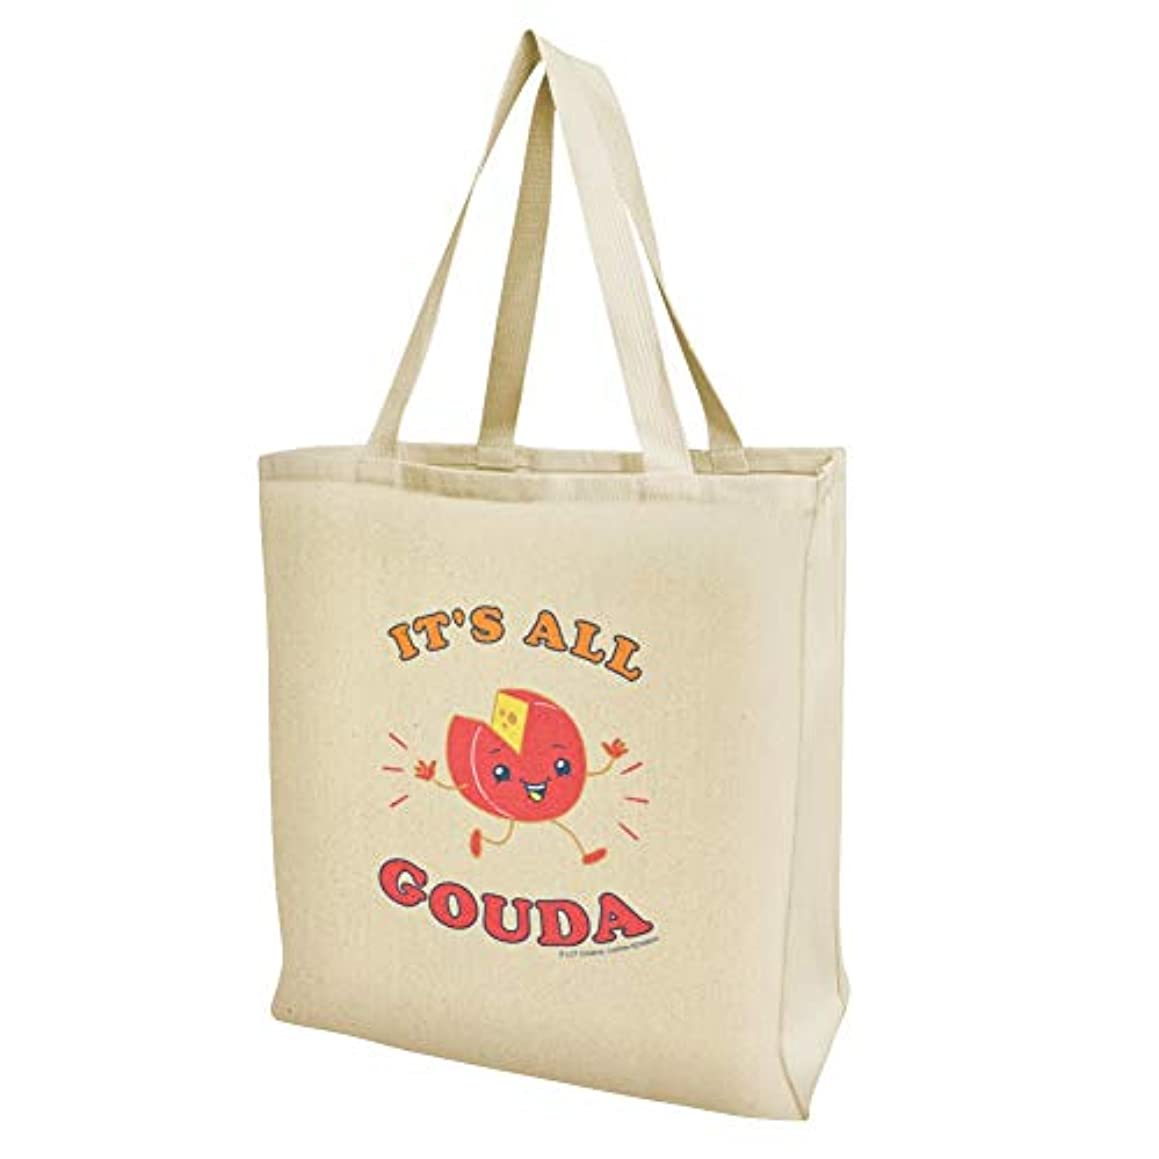 It's All Gouda Good Cheese Funny Humor Grocery Travel Reusable Tote Bag - Large